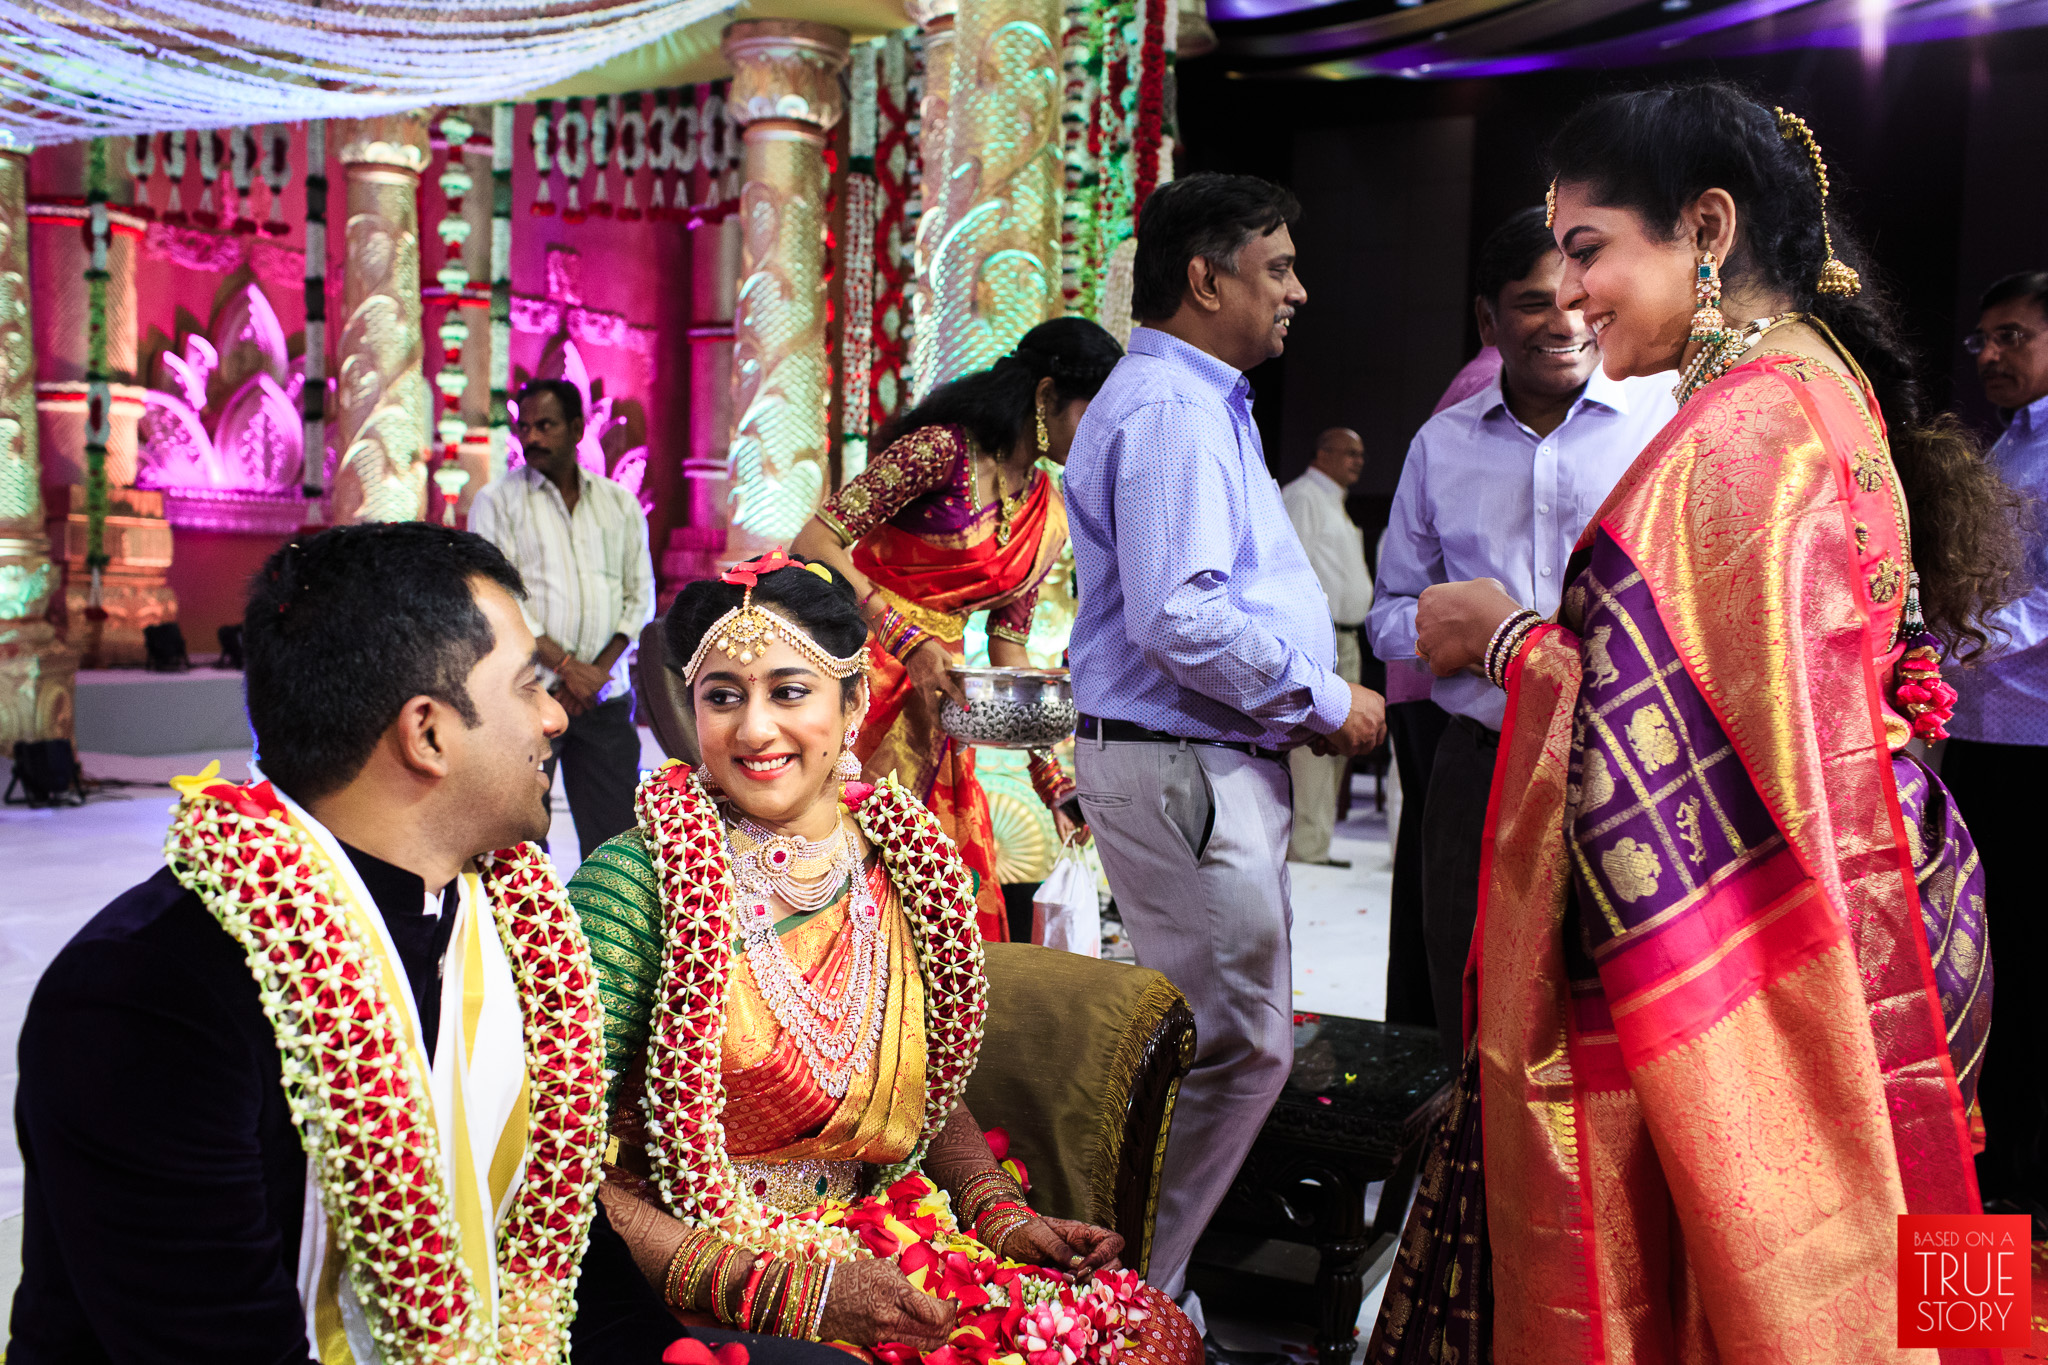 Candid-Wedding-Photography-Hyderabad-0027.jpg